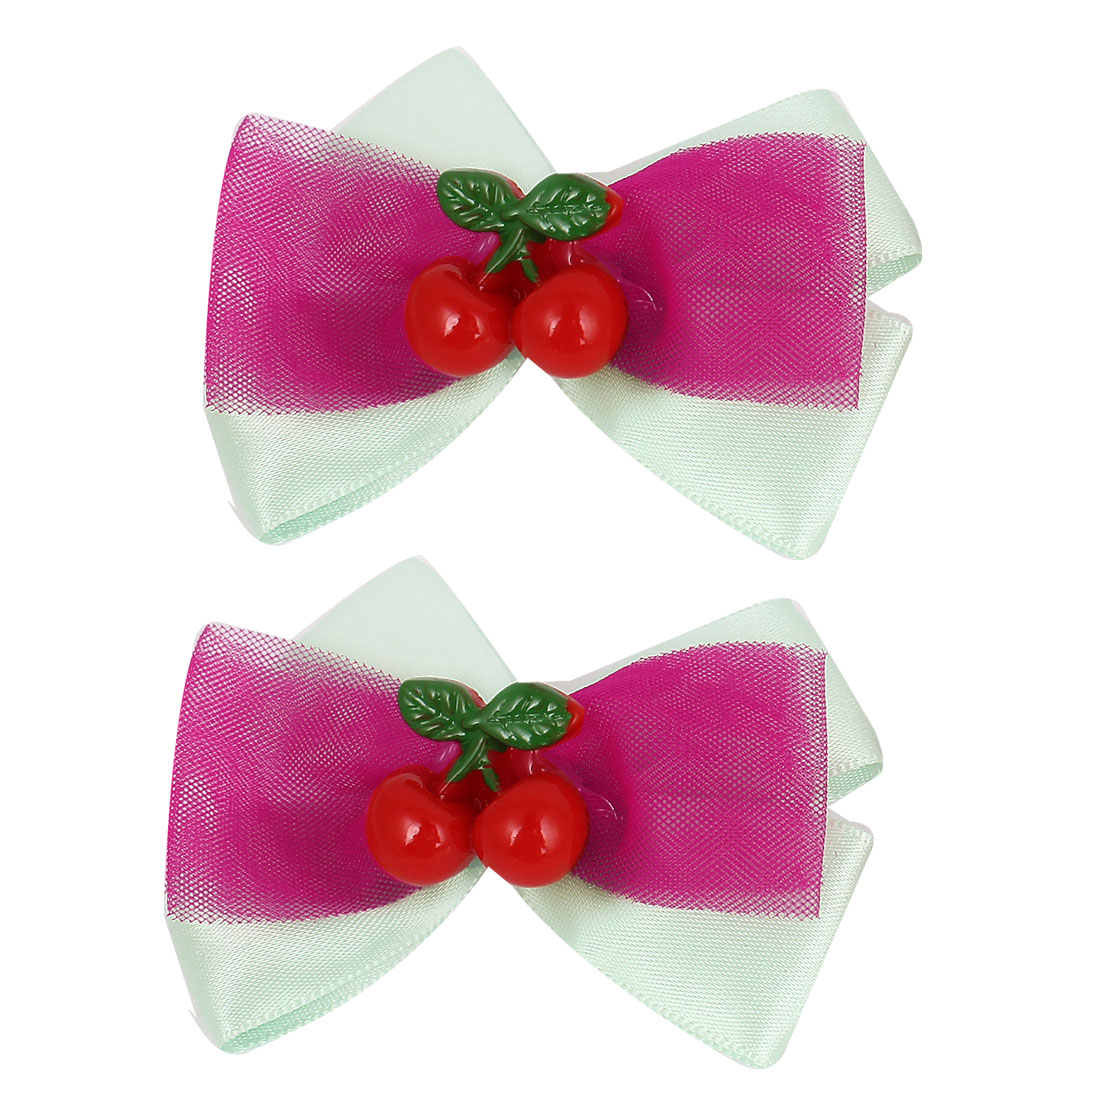 2 Pcs Pale Green Nylon Organza Bowknot Two Cherries Decor Alligator Hair Clip for Girl